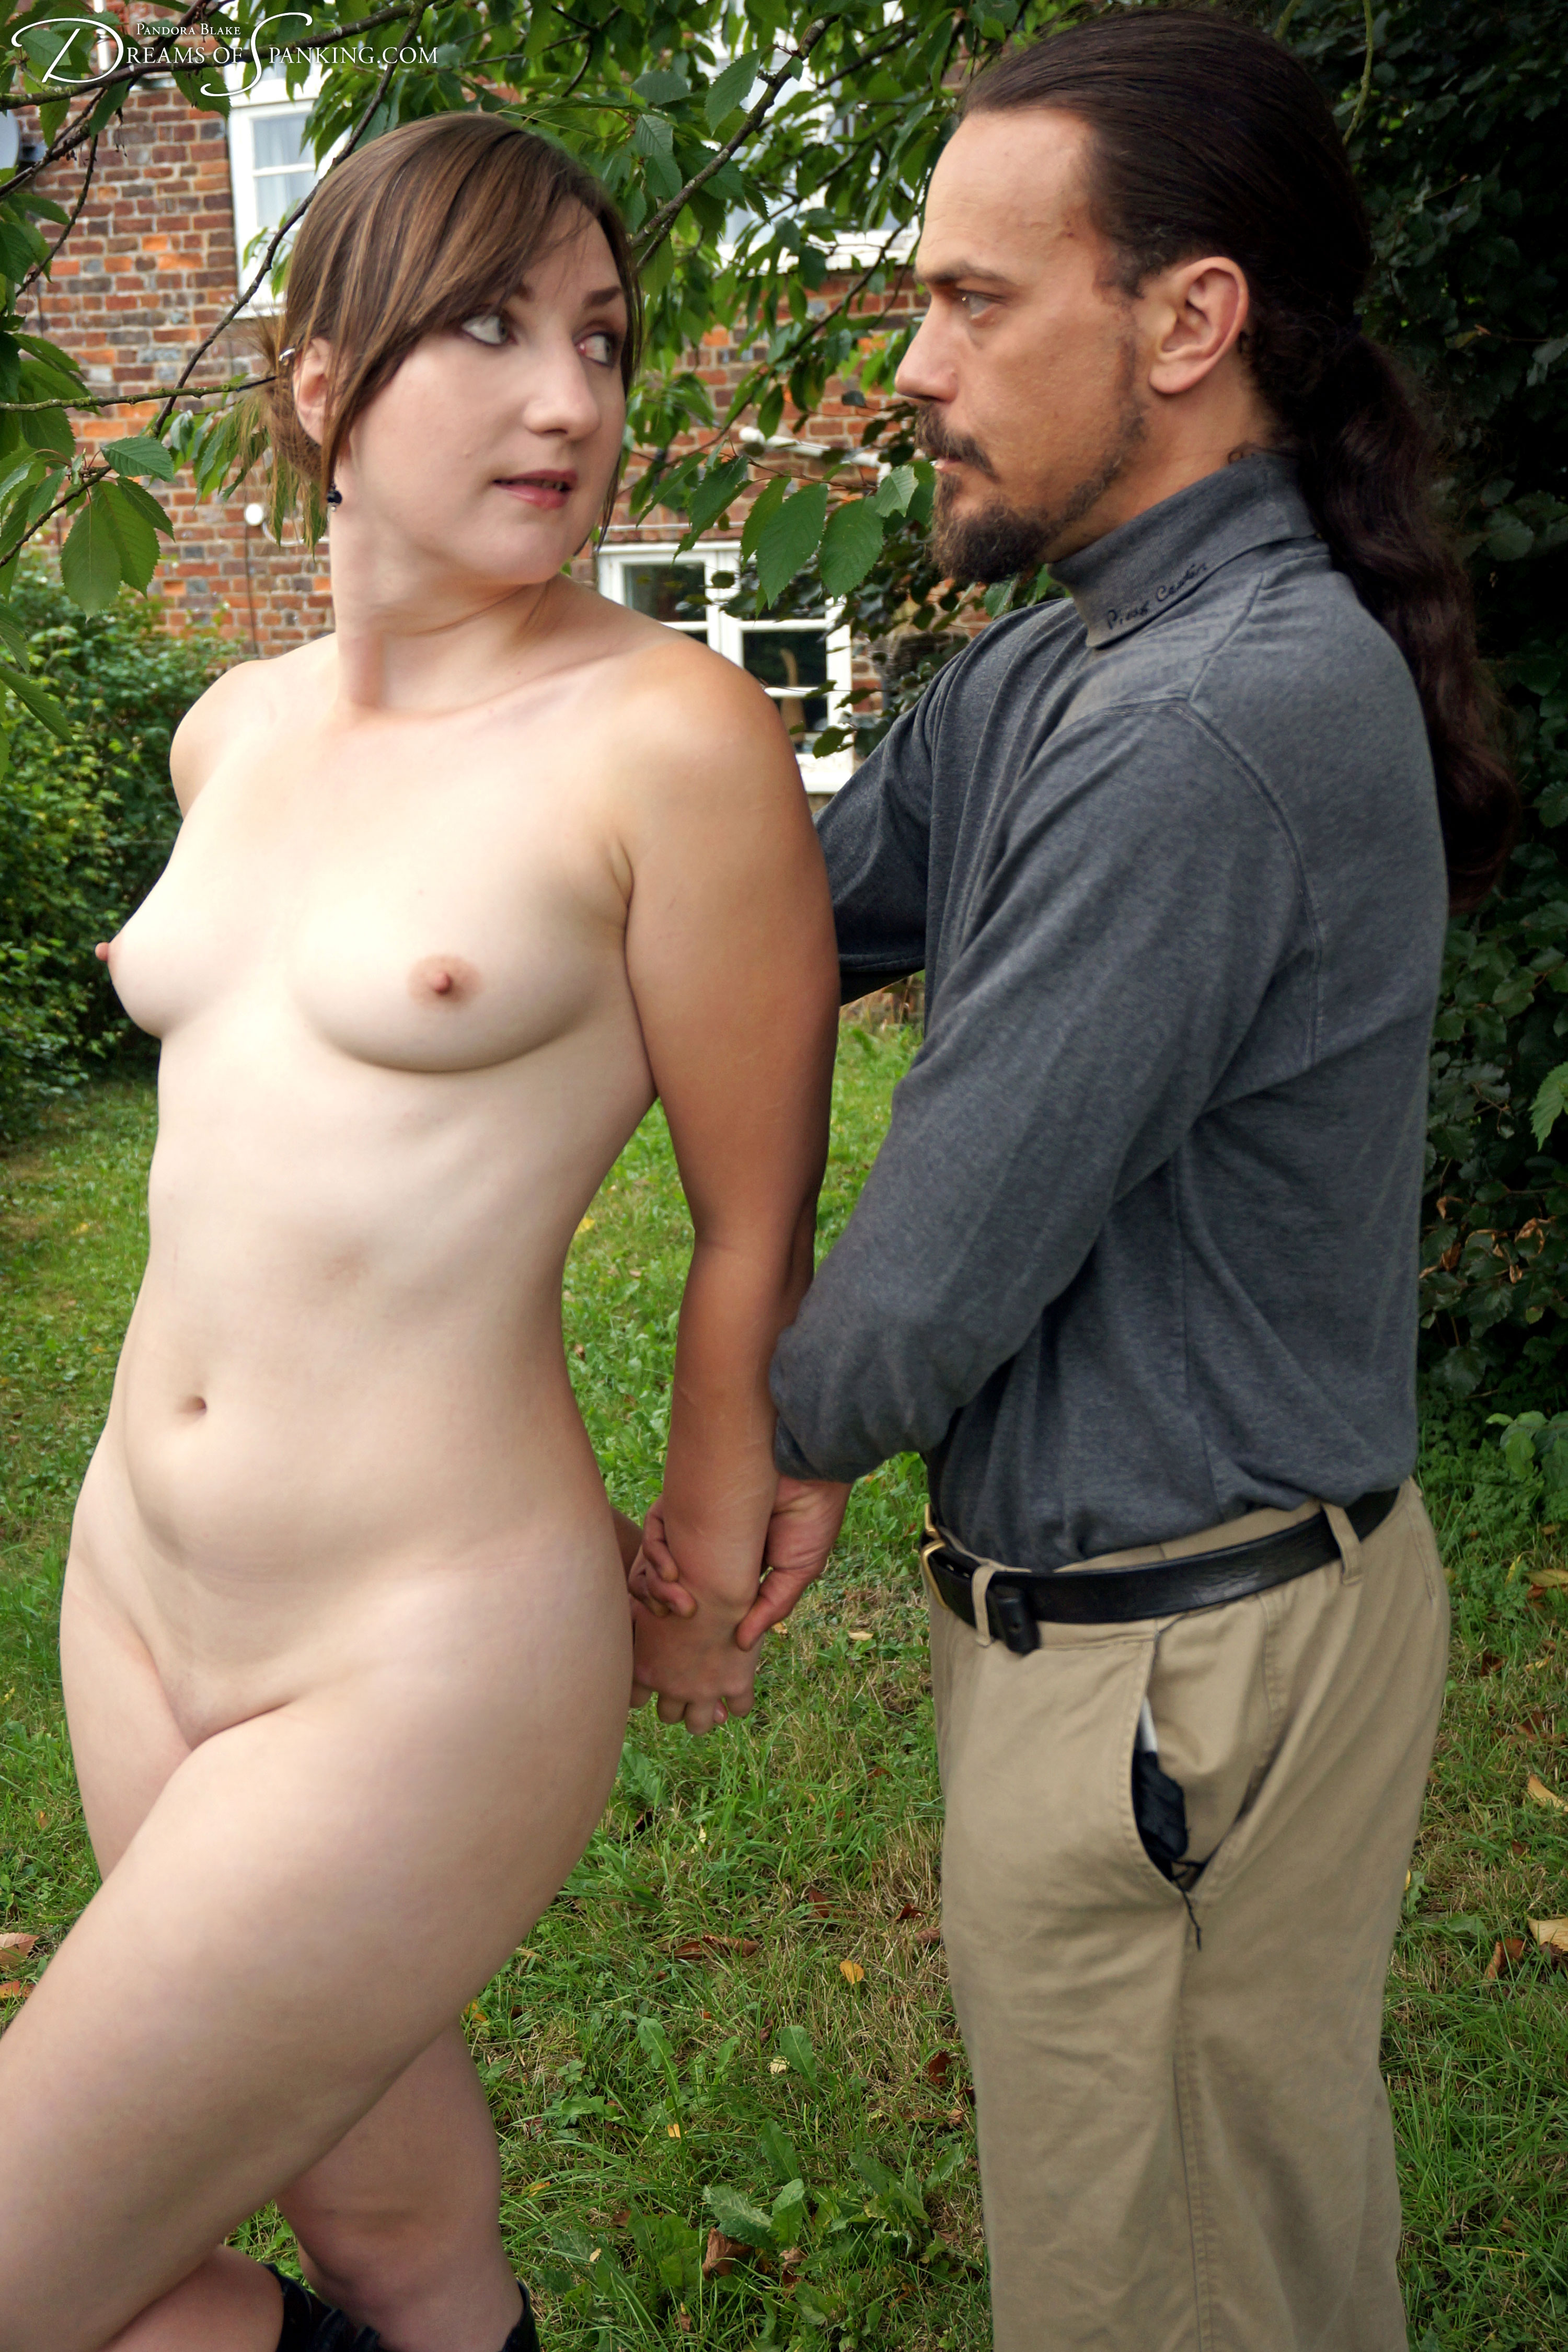 Pandora Blake is tied naked and birched in the garden at Dreams of Spanking